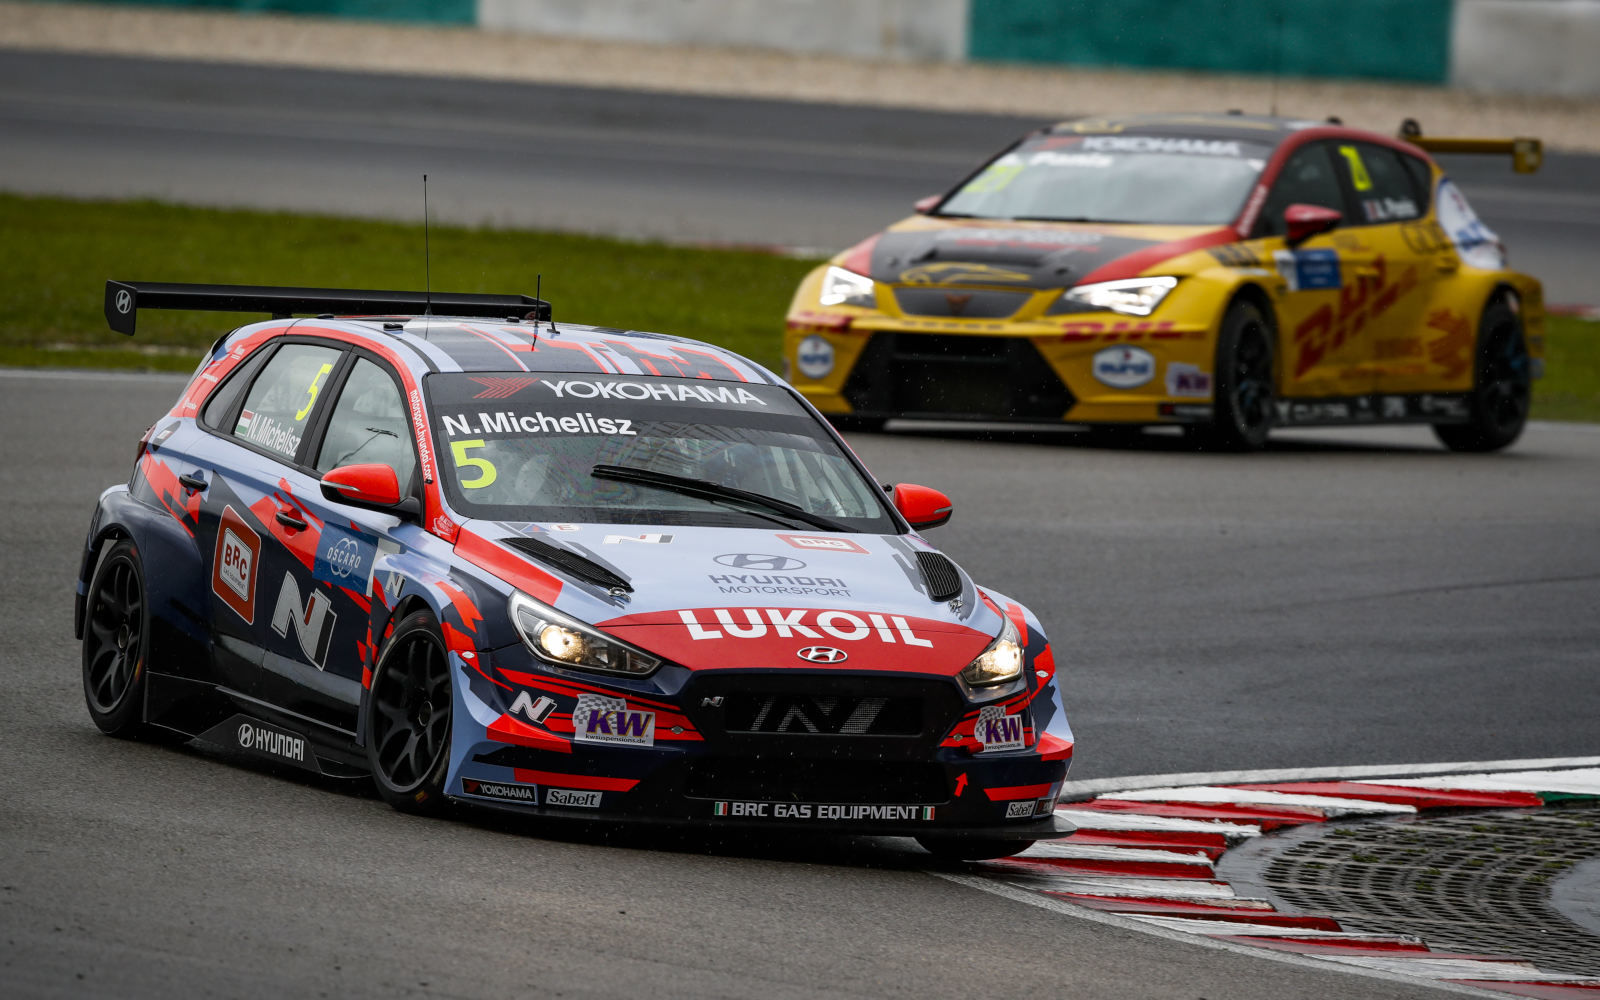 Photo of WTCR 2019 sona erdi; Hyundai i30 N TCR zirvede!